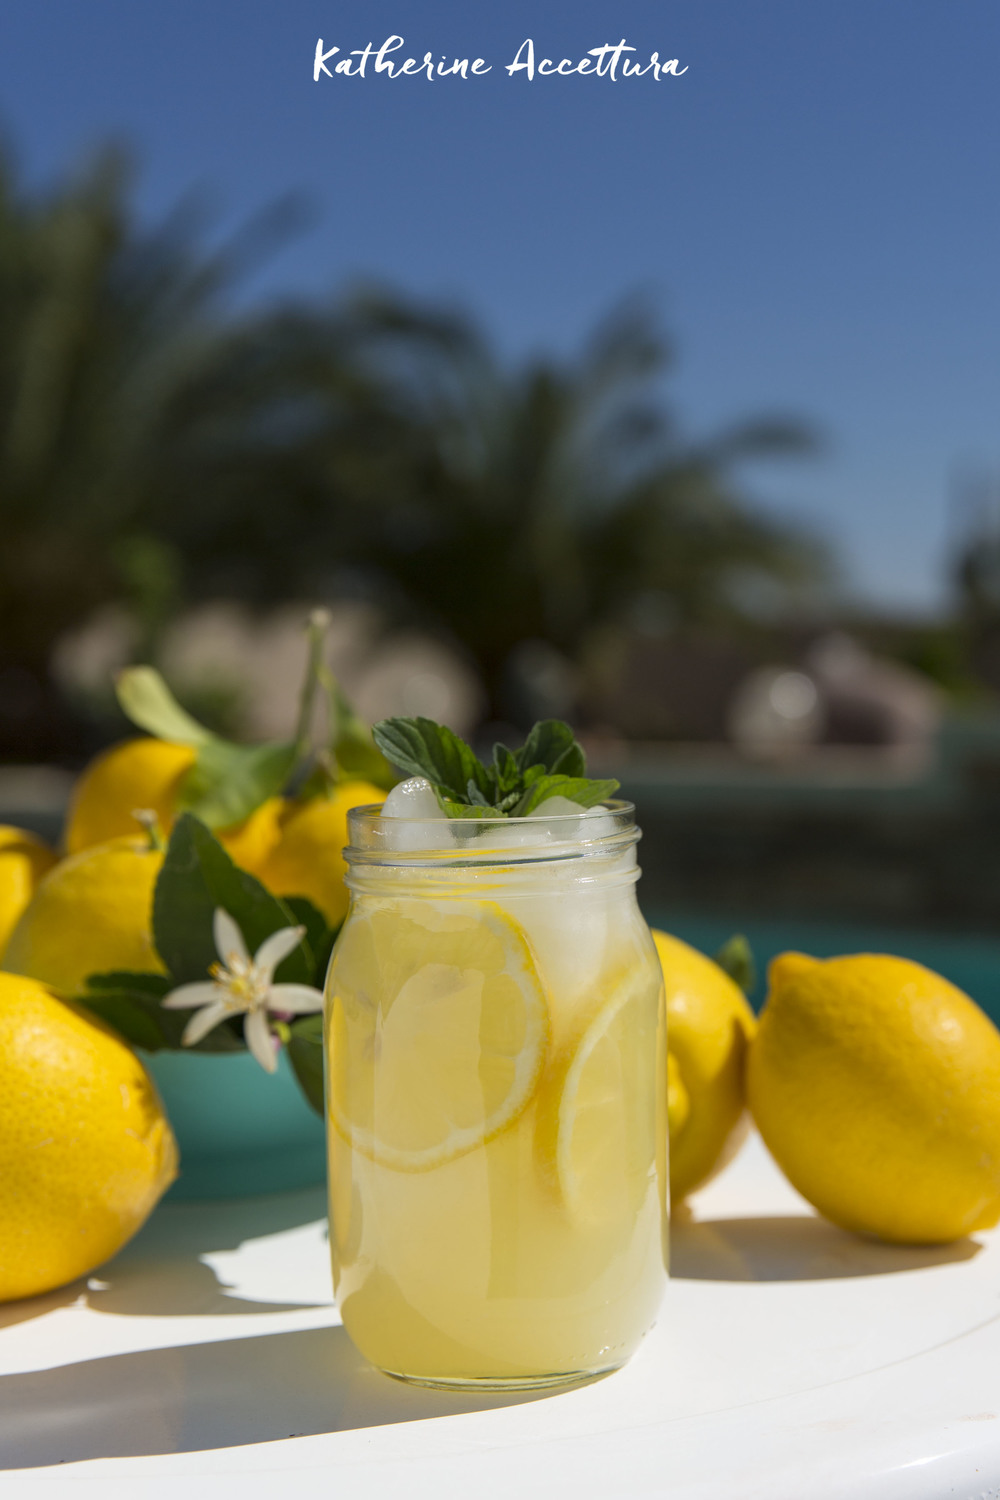 Check out this awesome fresh squeezed lemonade recipe